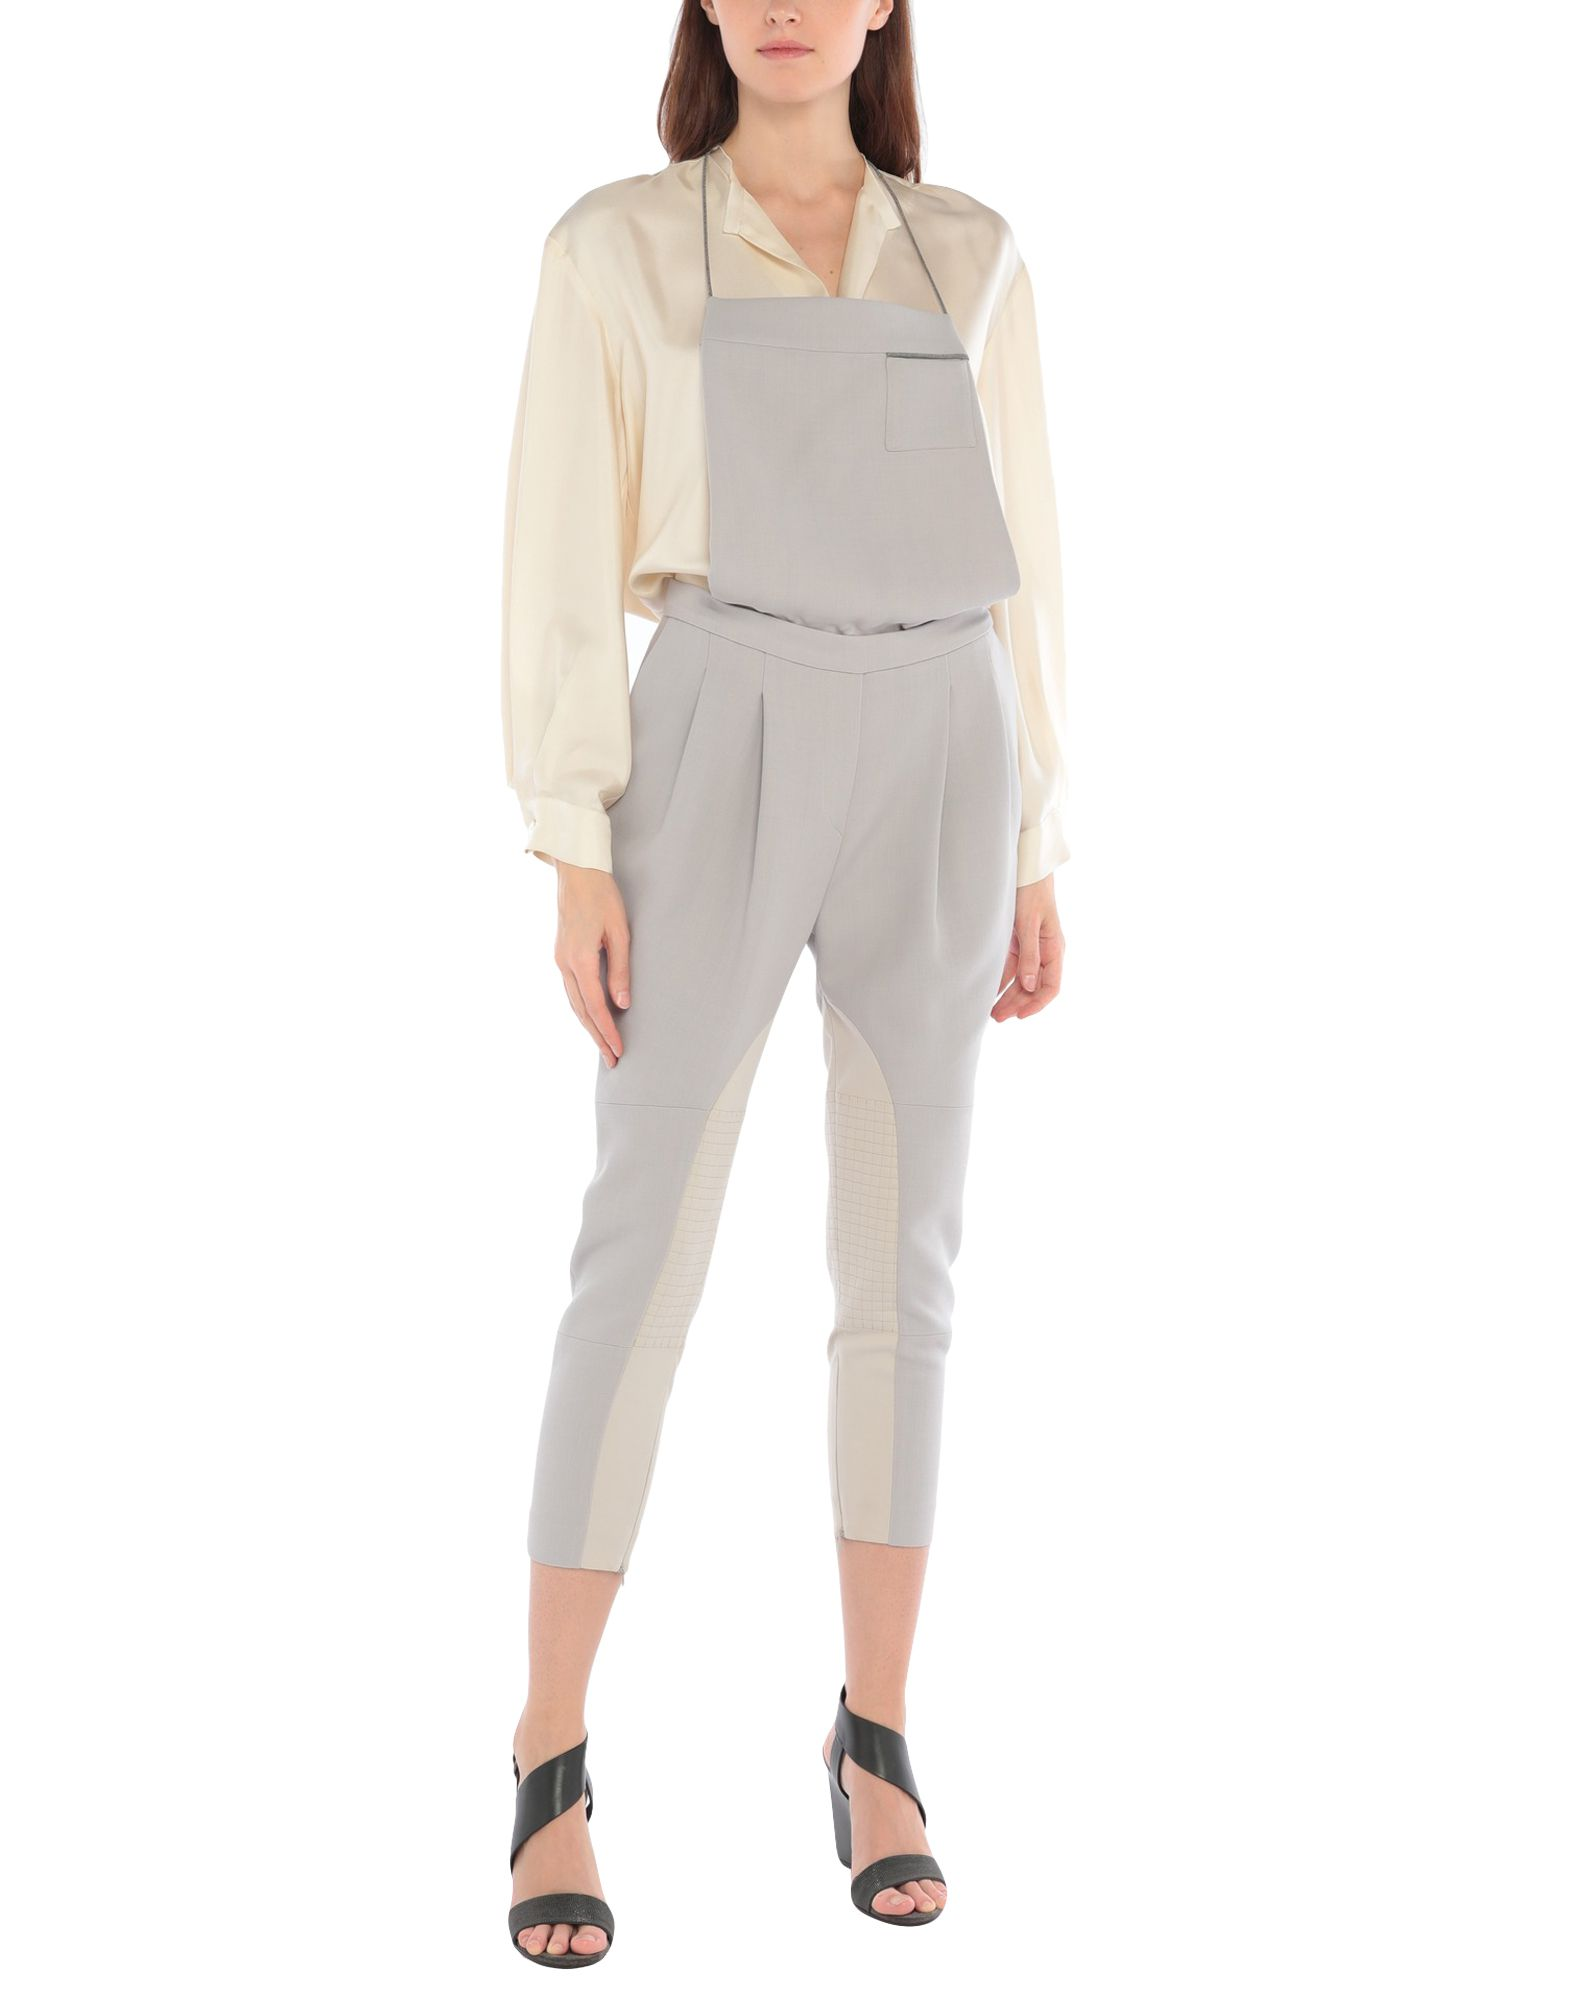 BRUNELLO CUCINELLI Overalls. overalls top, solid color, multipockets, metal applications, zip, zips at hem, high waisted, cool wool, sleeveless. 100% Virgin Wool